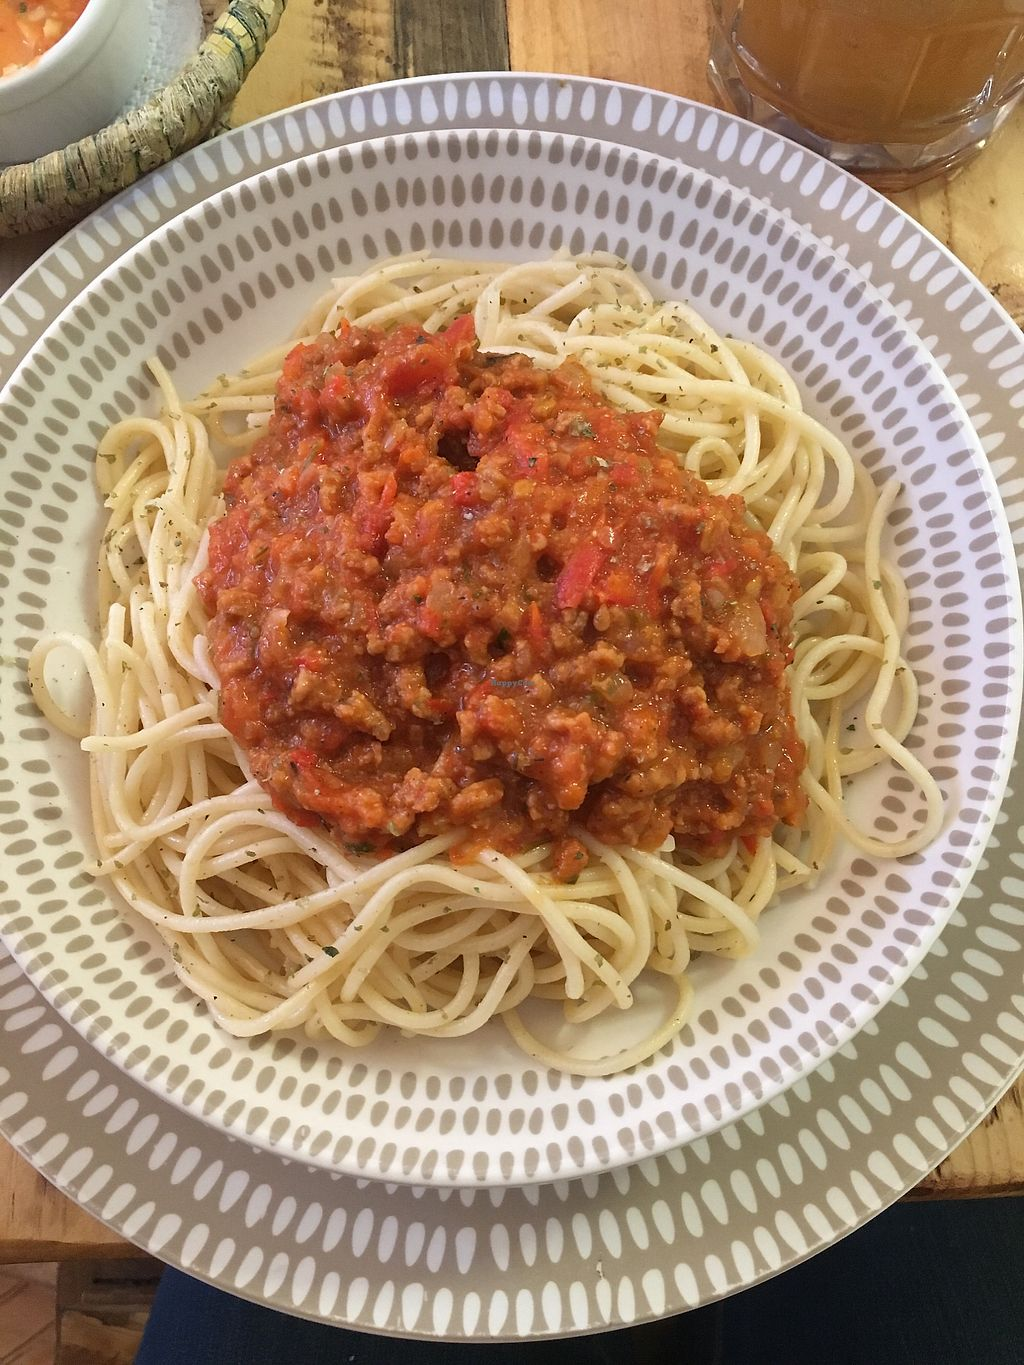 """Photo of Estrella Negra  by <a href=""""/members/profile/MonicaB"""">MonicaB</a> <br/>Spaghetti bolognese made from soya <br/> March 11, 2018  - <a href='/contact/abuse/image/21442/369363'>Report</a>"""